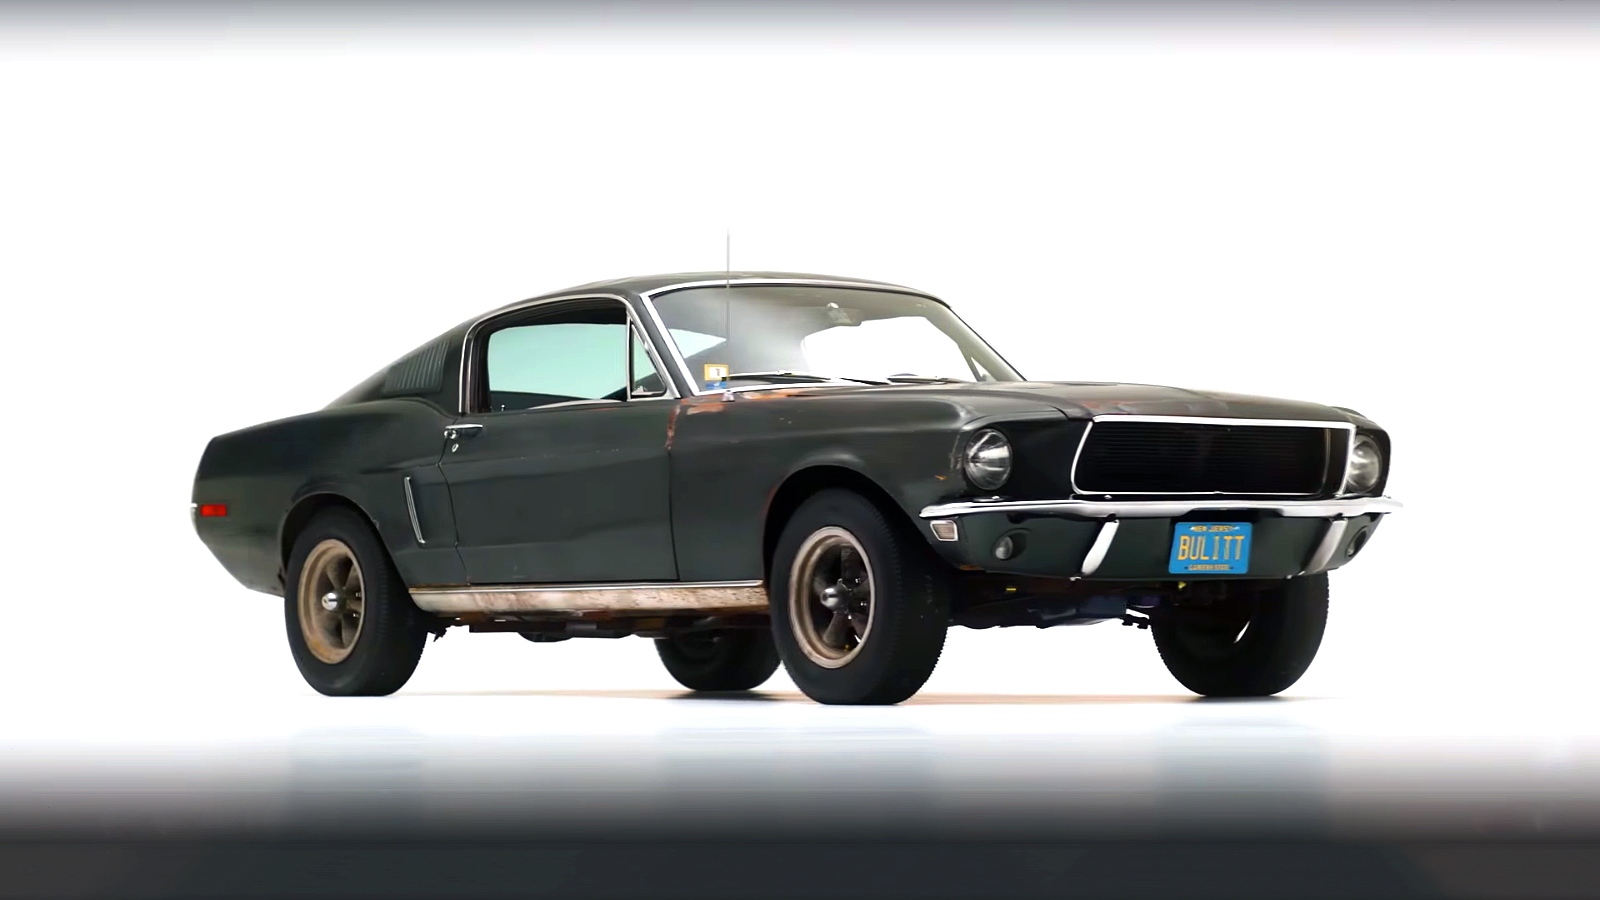 steve mcqueen s bullitt mustang 02 mcd. Black Bedroom Furniture Sets. Home Design Ideas